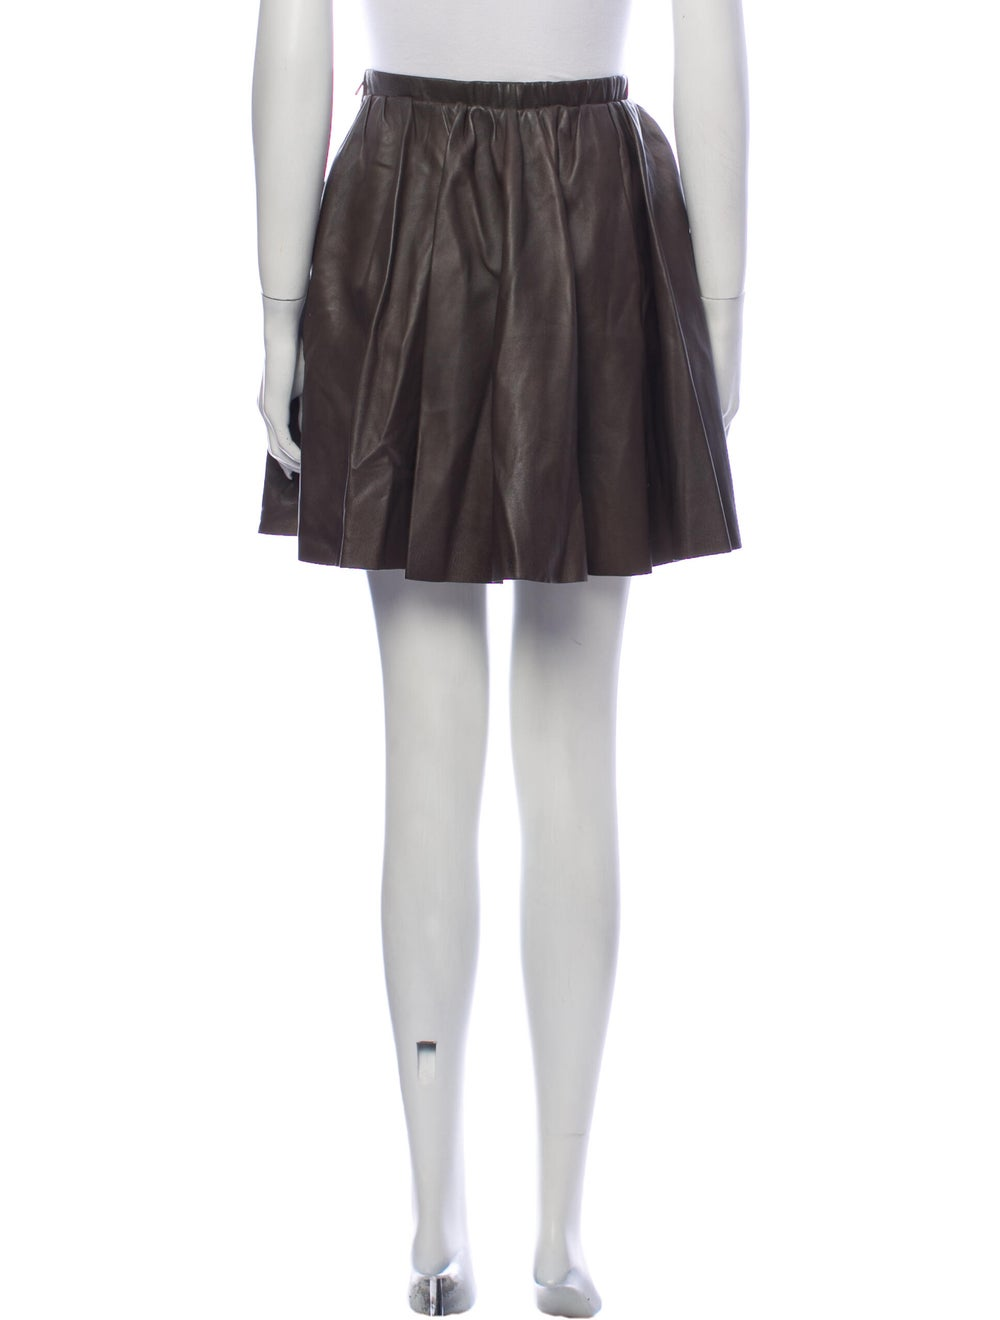 Acne Studios Leather Mini Skirt Brown - image 3